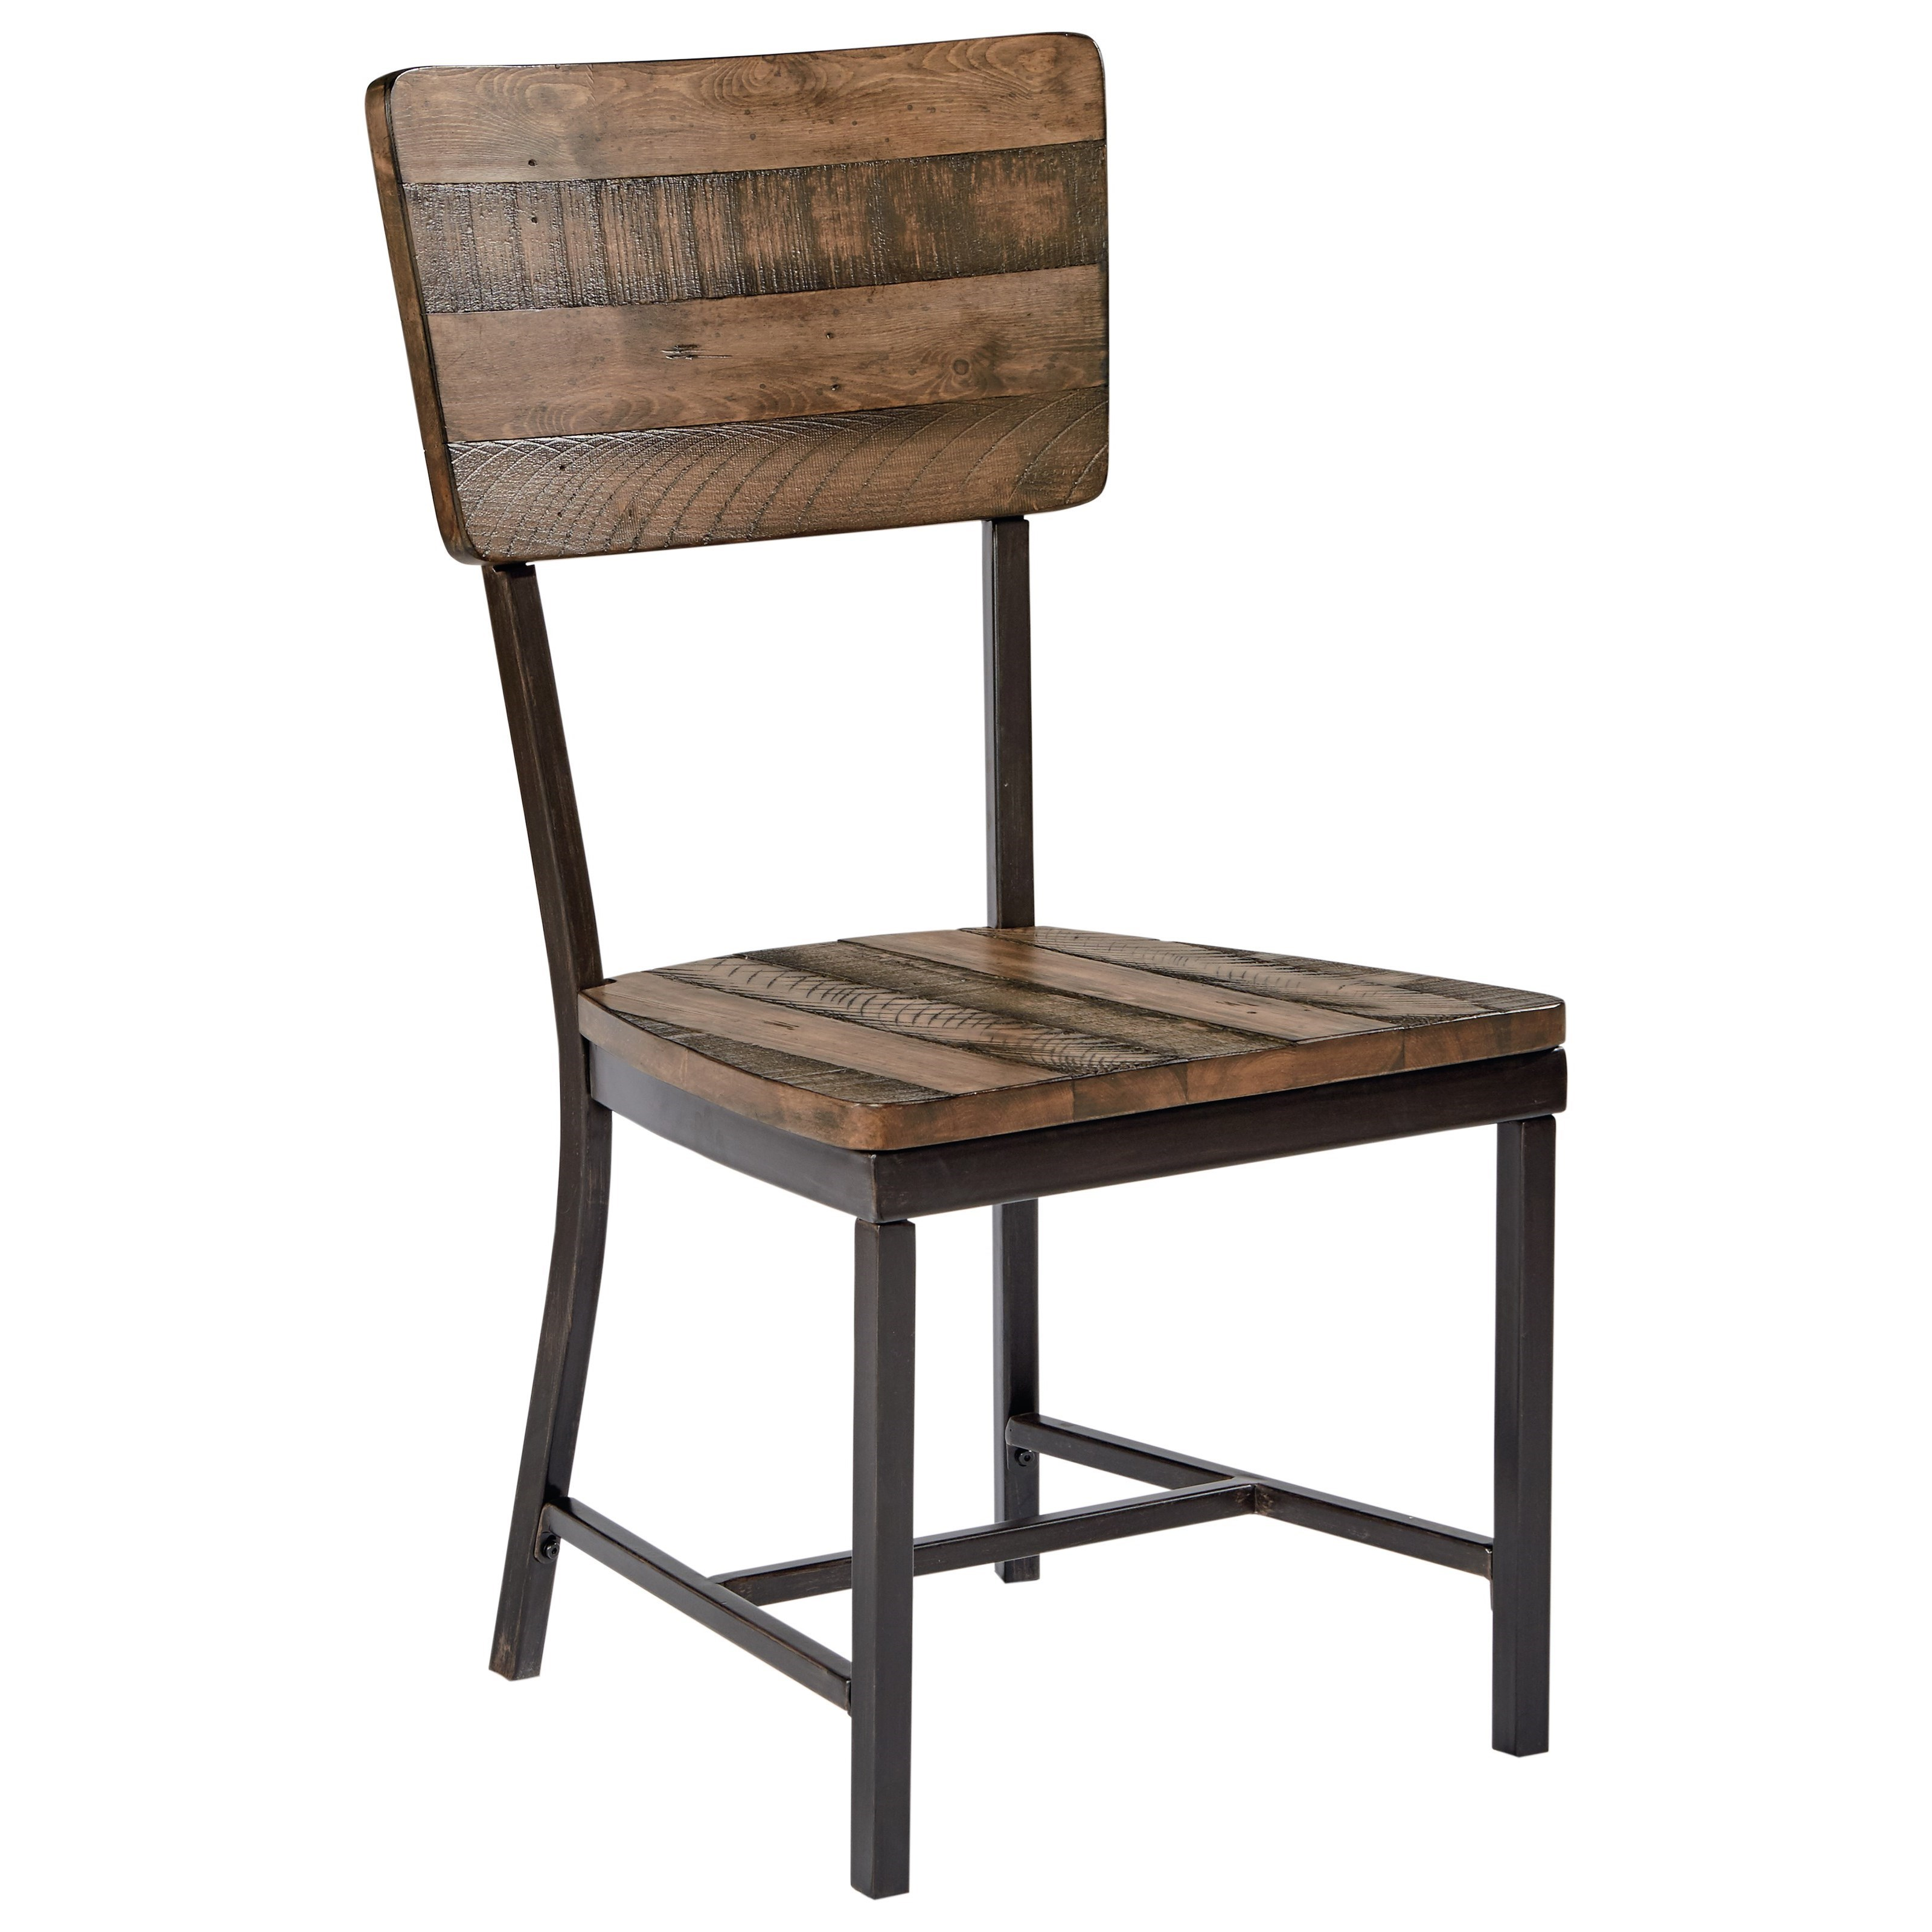 Perfect Magnolia Home By Joanna Gaines IndustrialSide Chair ...